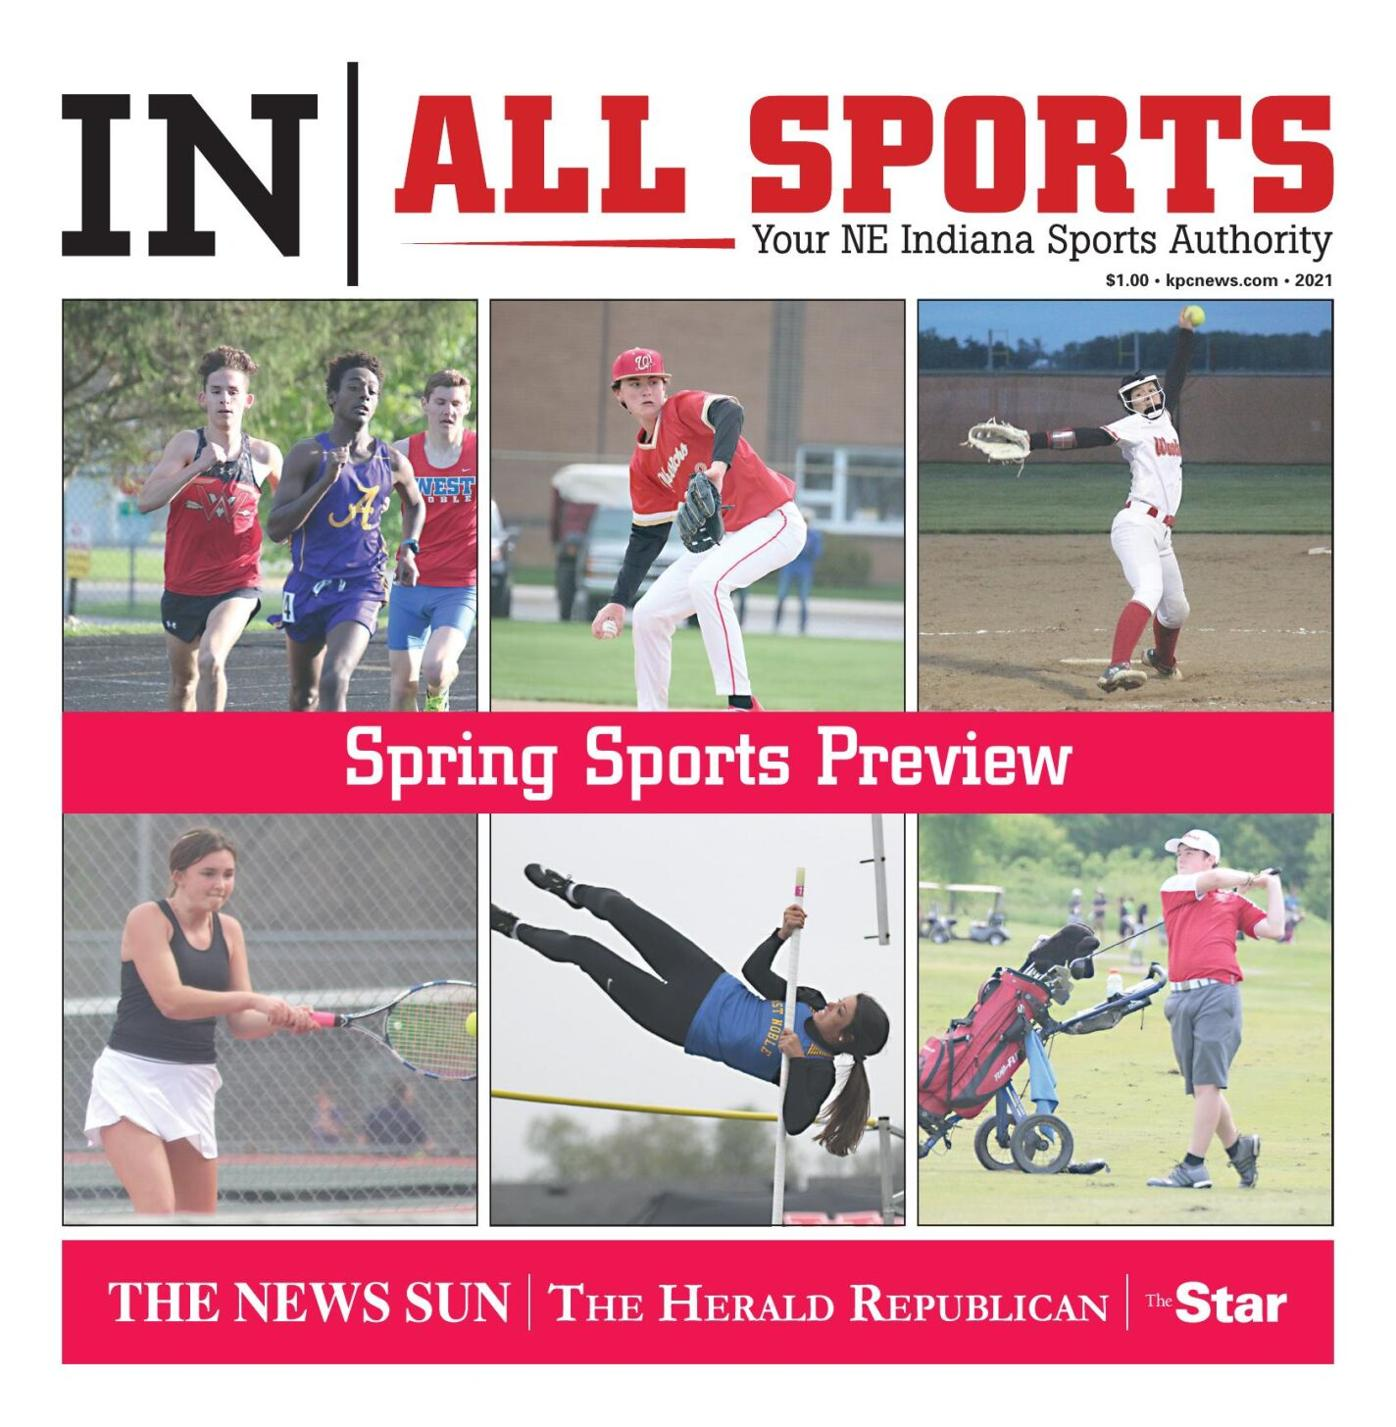 All in Sports Spring 2021